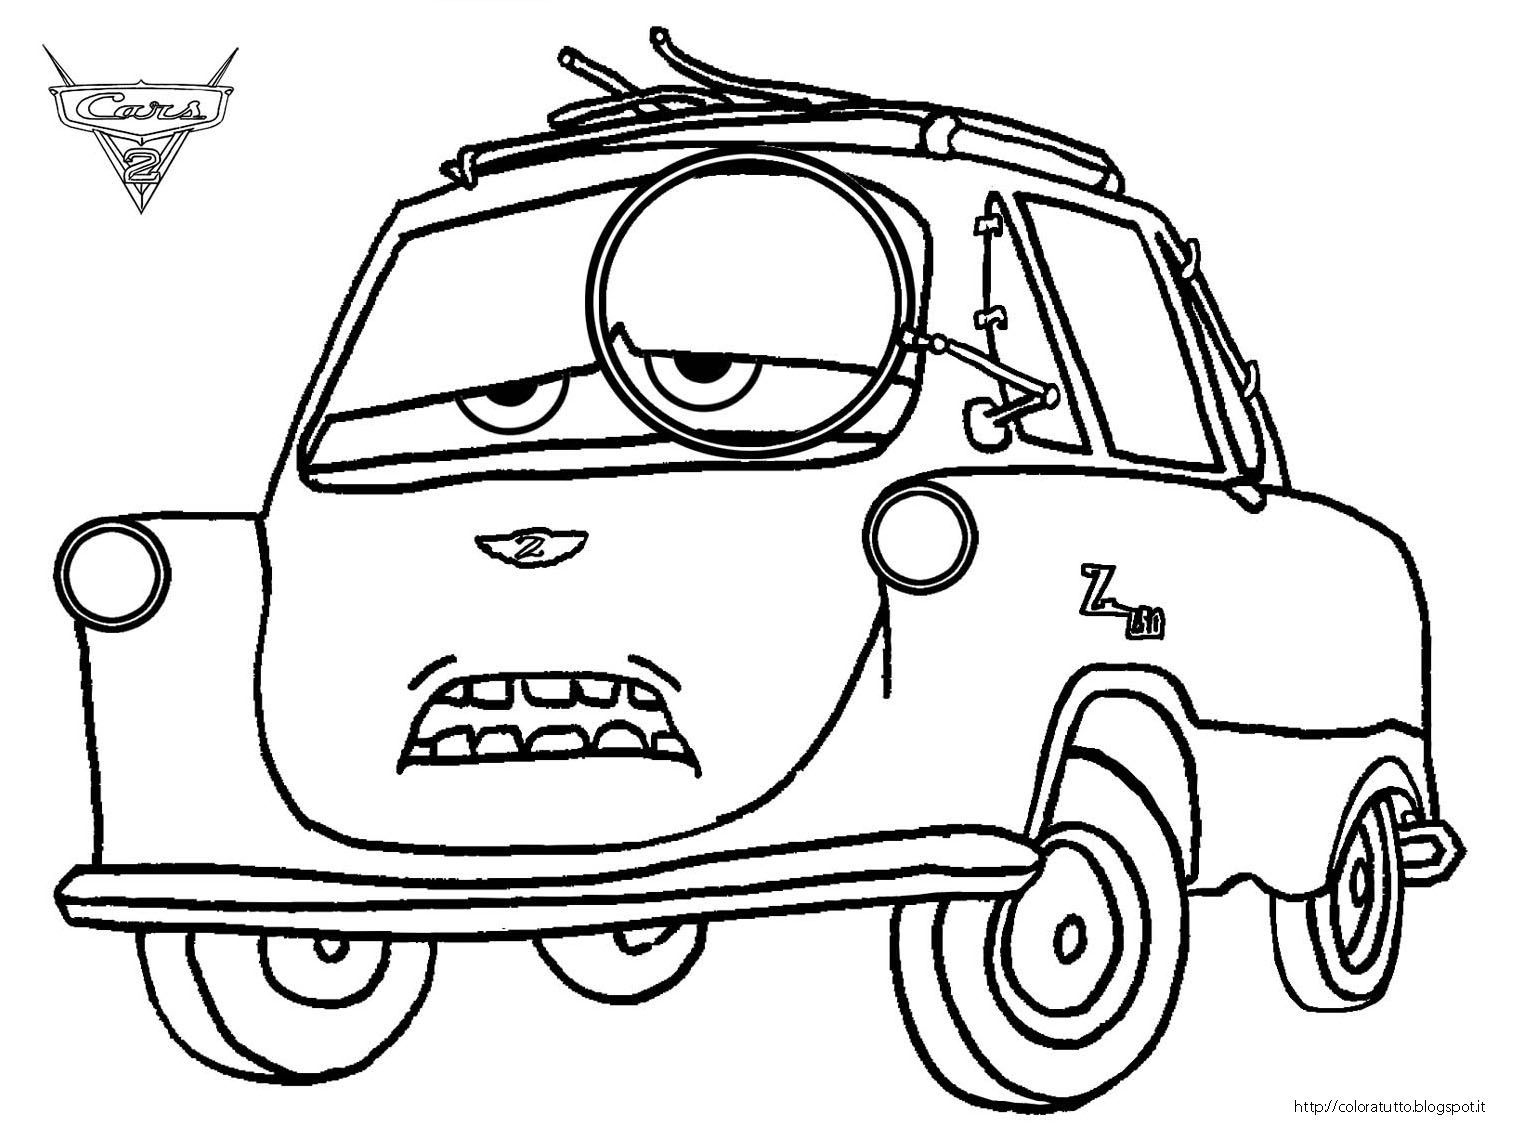 Cars guido coloring pages - Professor